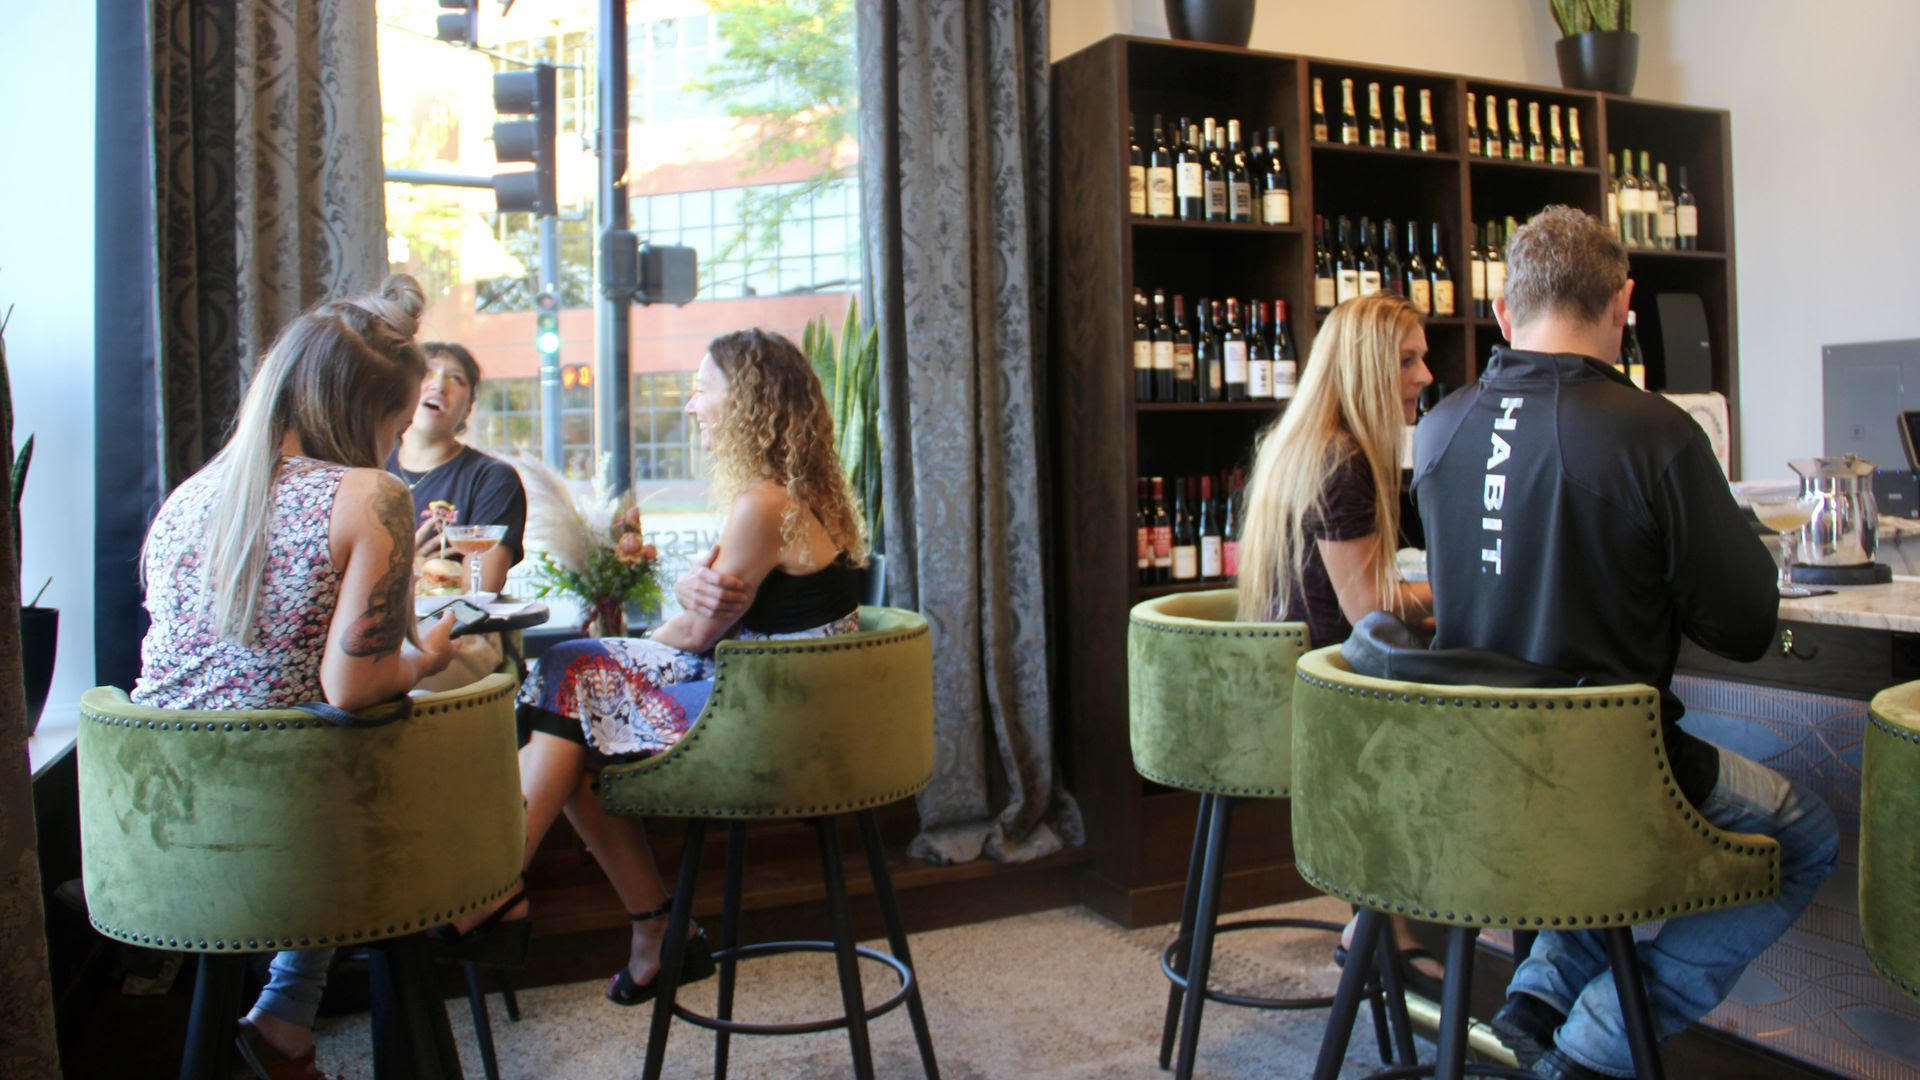 Two groups of people dine inside Des Moines' New Northwestern.